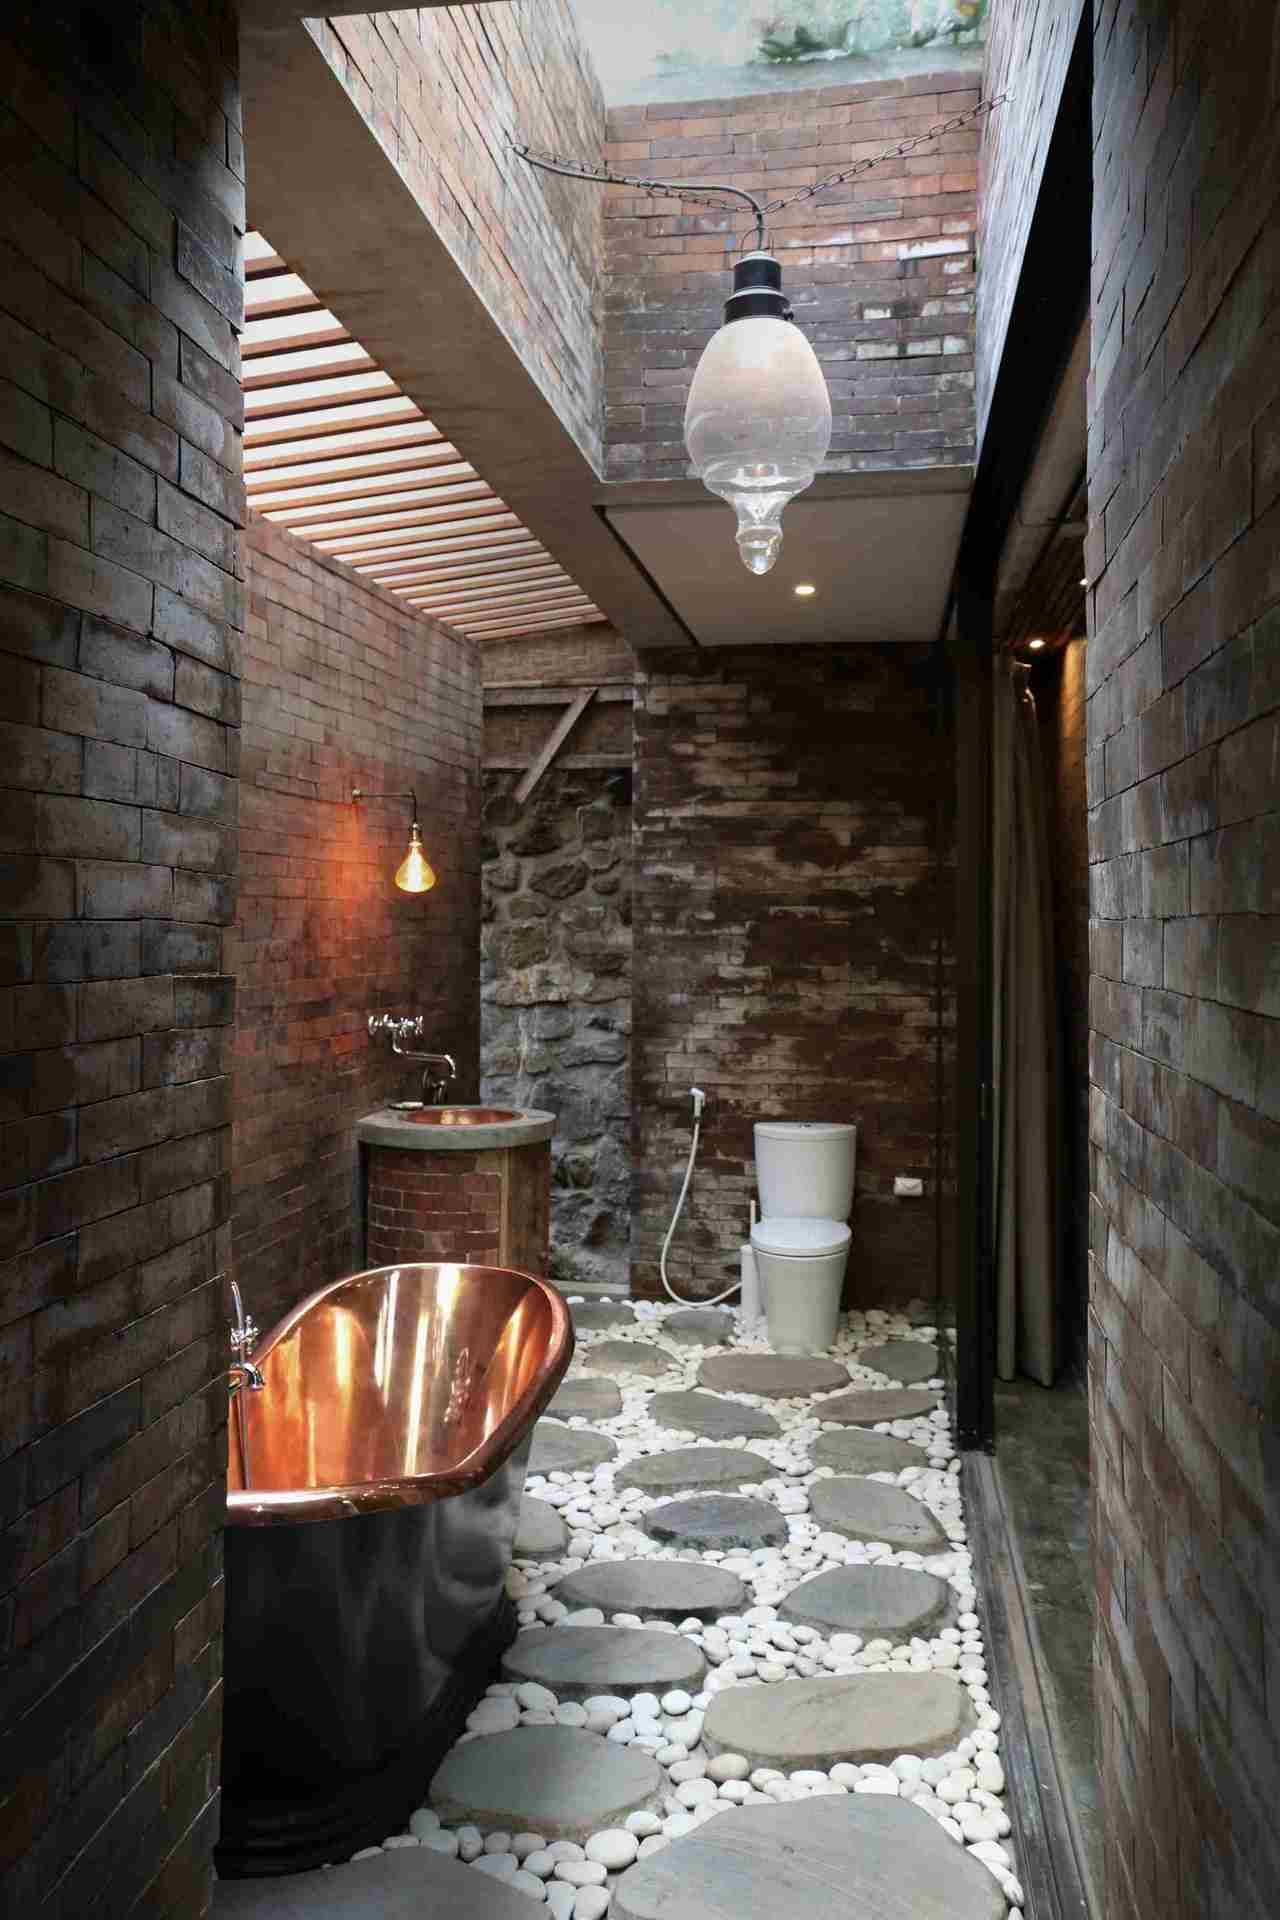 Outdoor Shower Tumblr Stylish Homes Outdoor Shower Features A Copper Tub In This Home